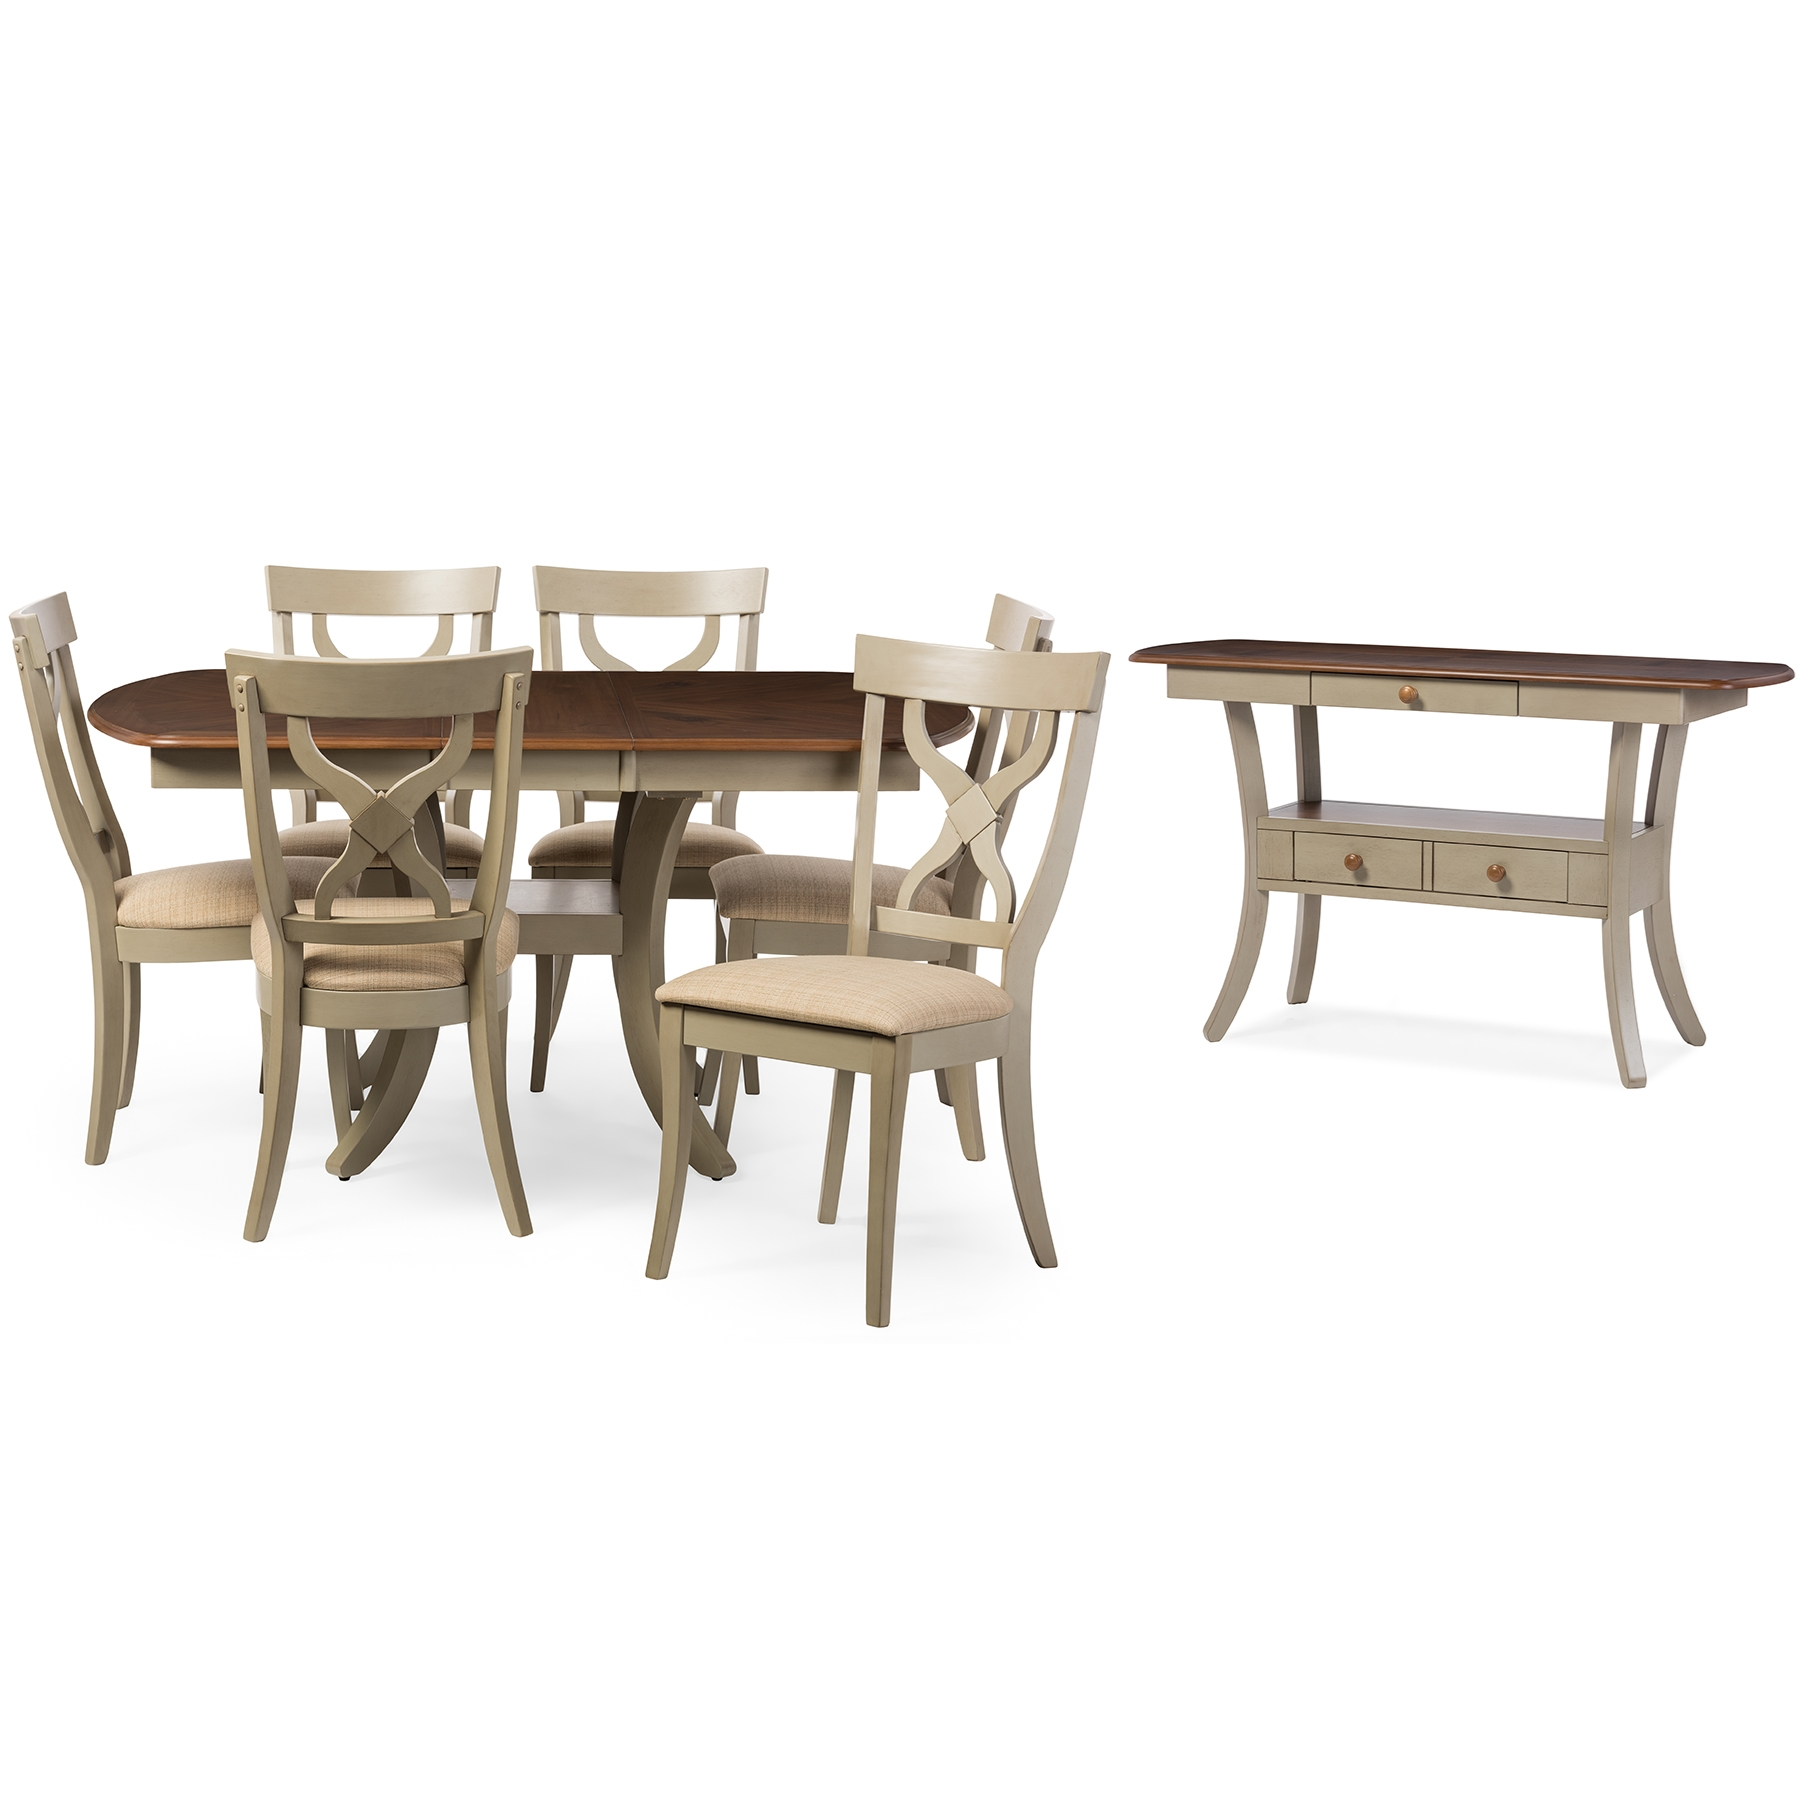 Baxton Studio Balmoral Chic Country Cottage Antique Oak Wood And